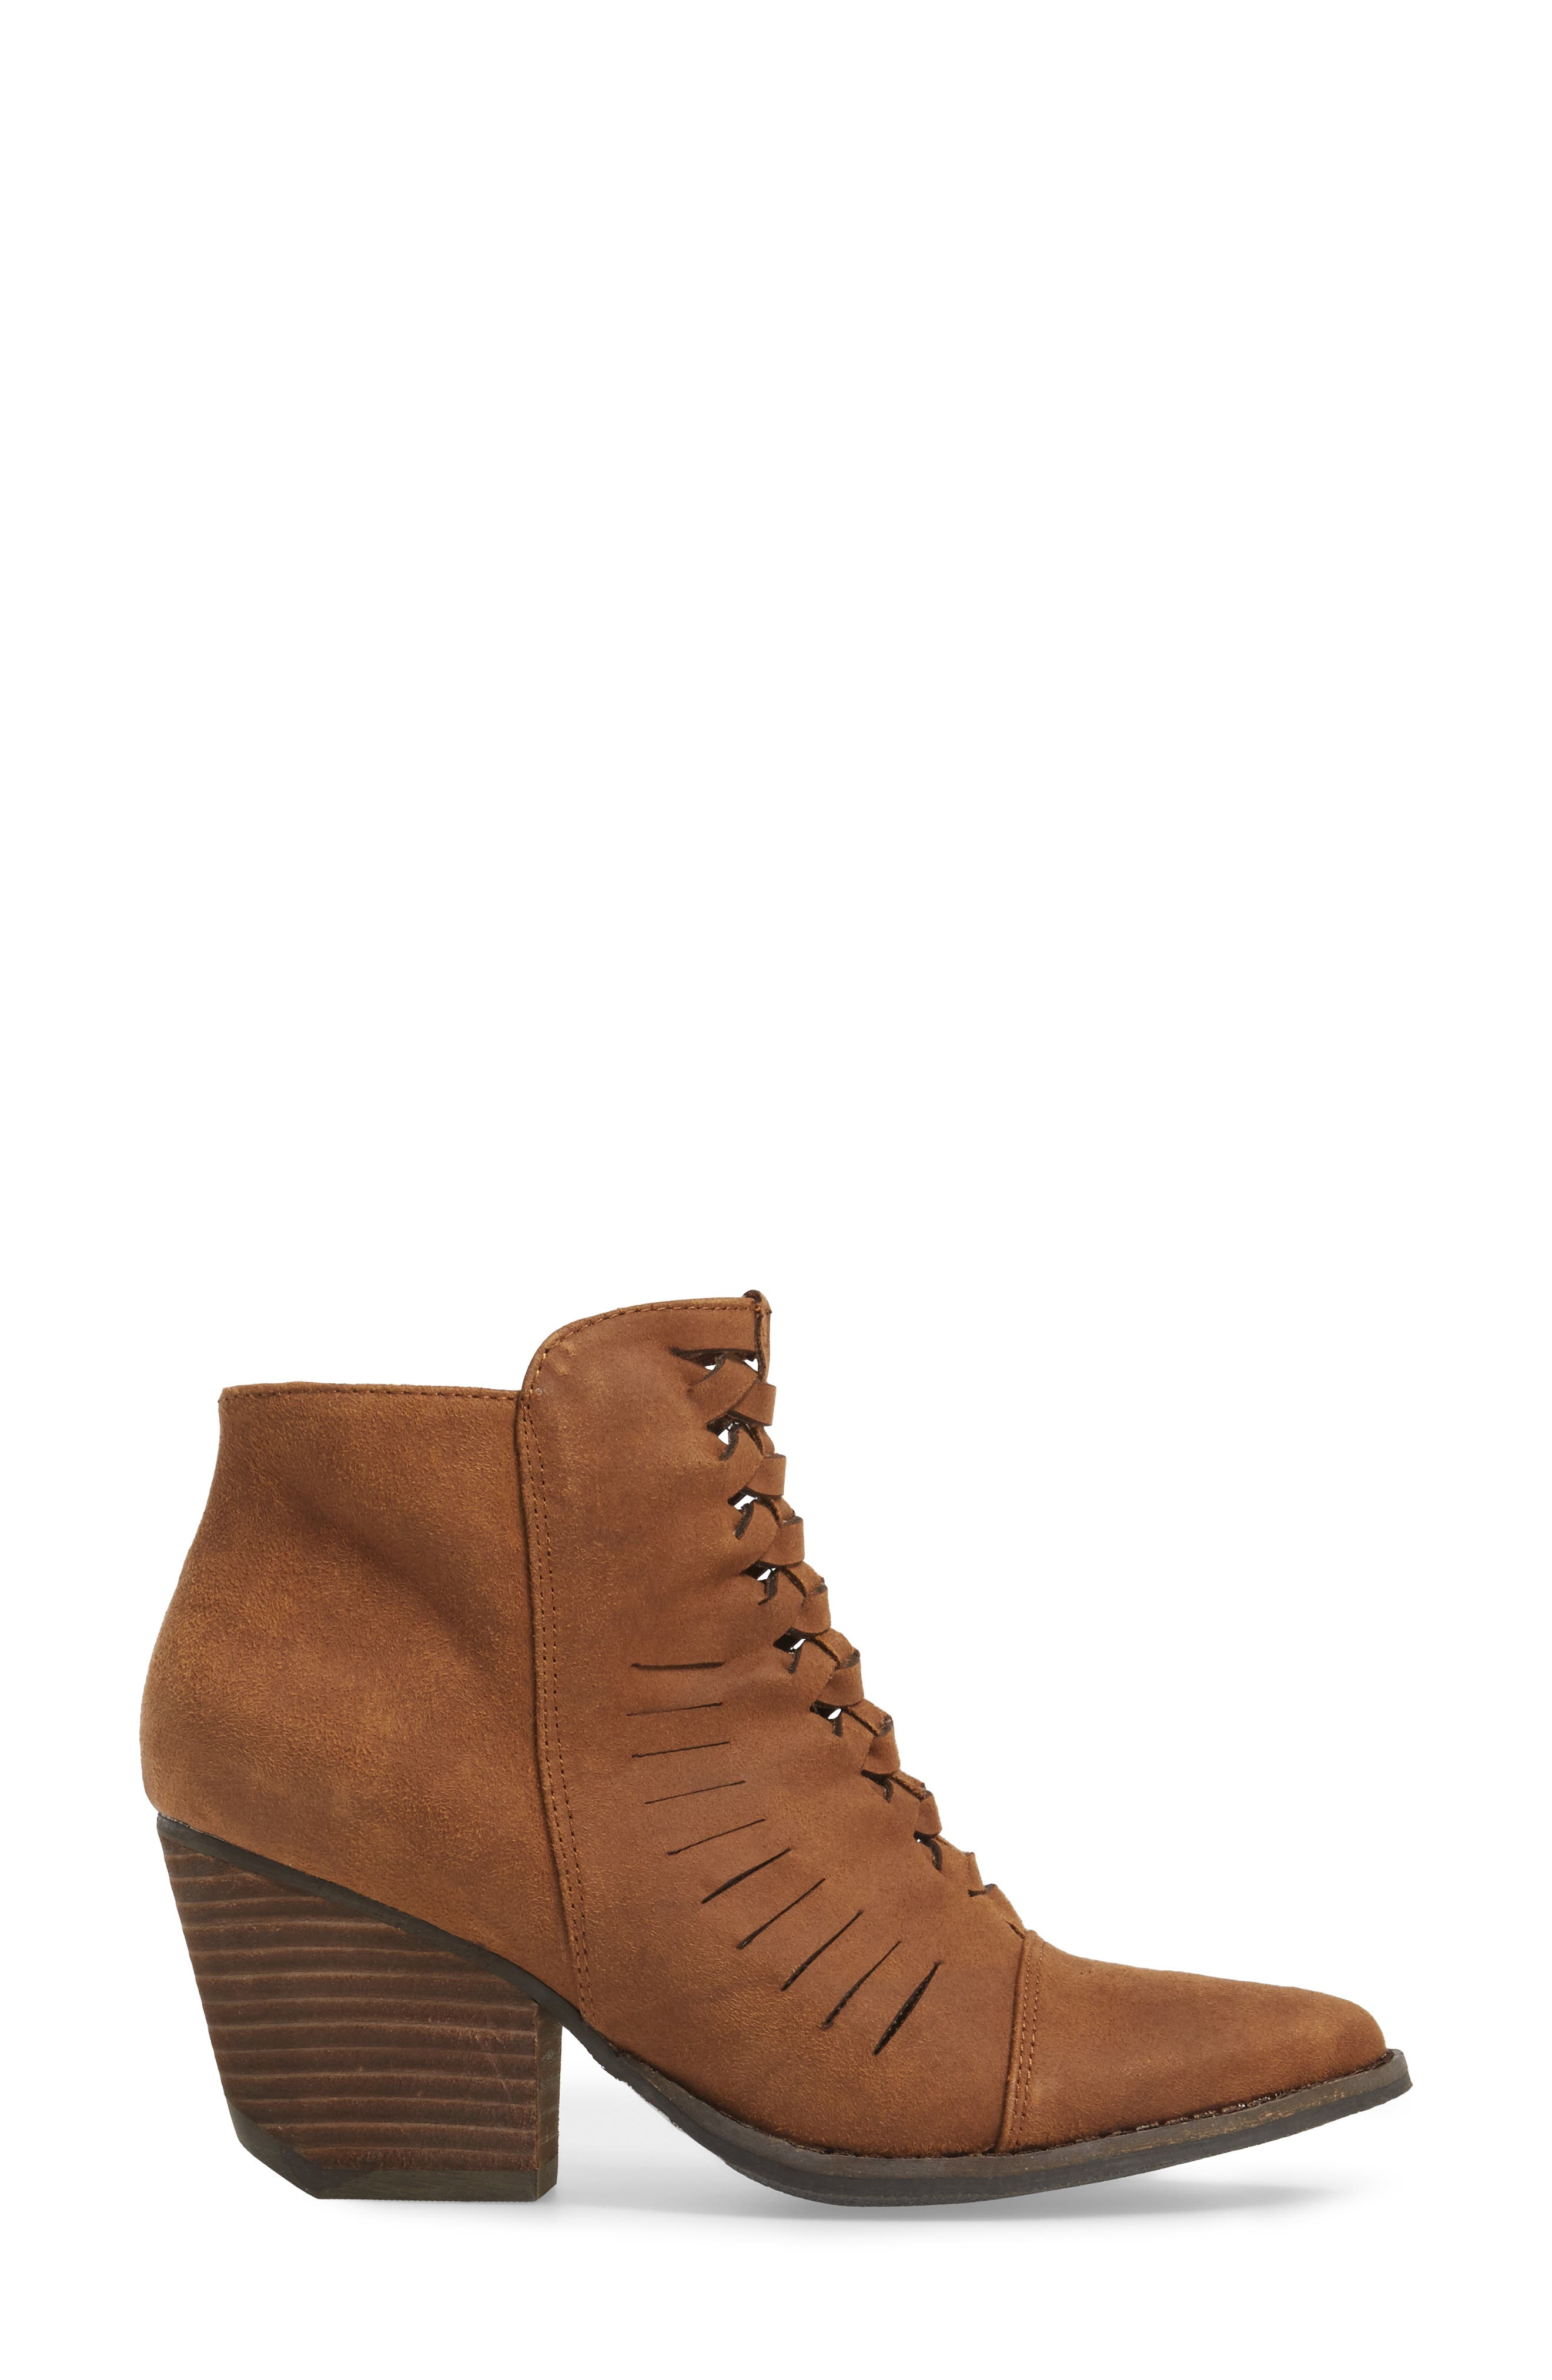 Ally Woven Bootie,                             Alternate thumbnail 9, color,